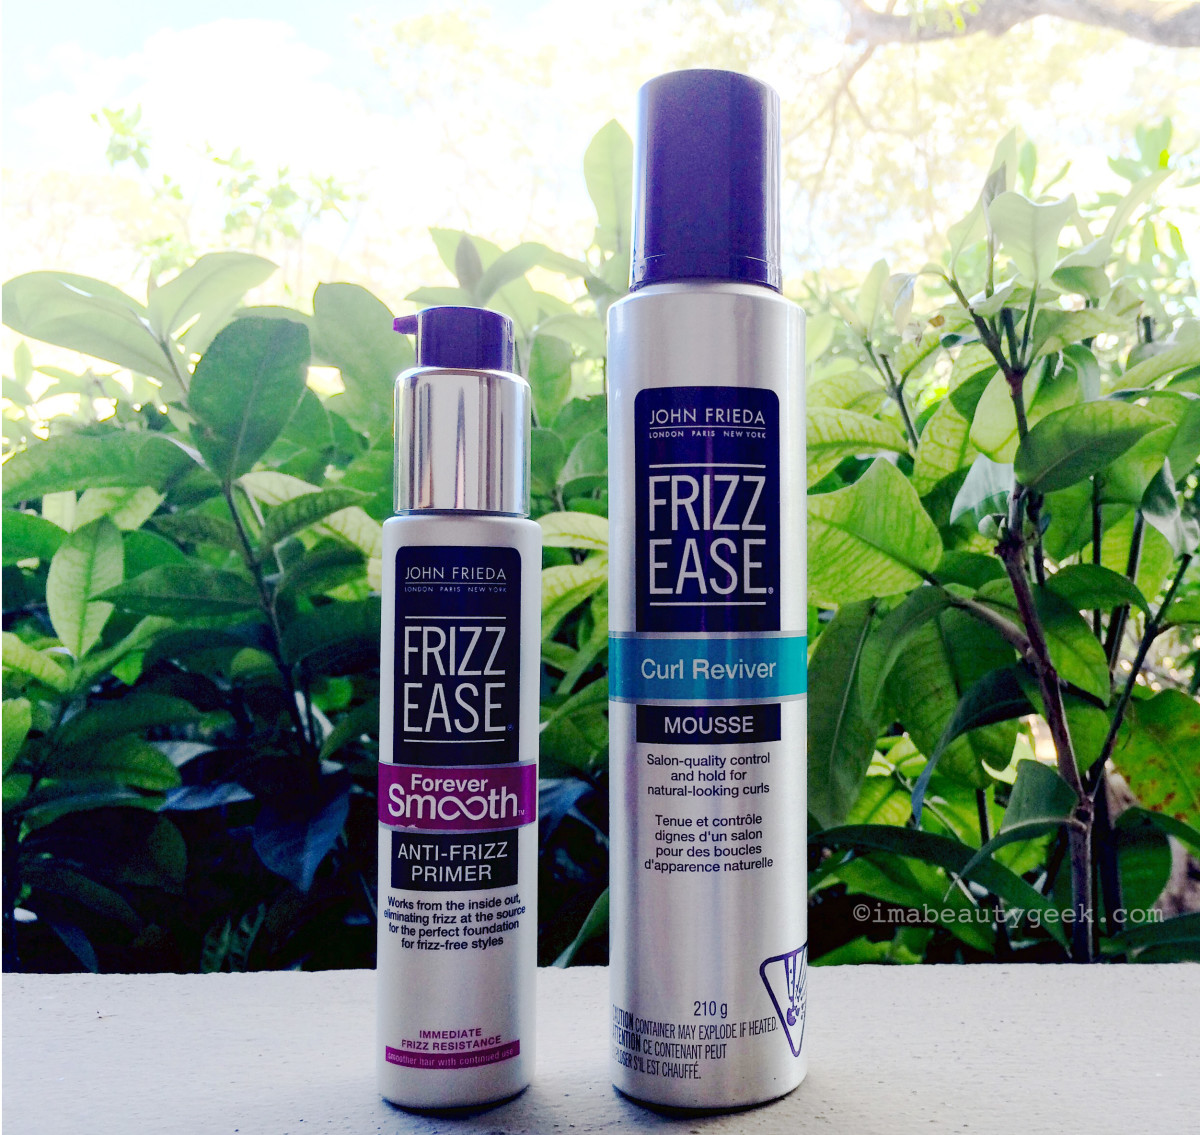 John Frieda Frizz Ease Forever Smooth Anti-Frizz Primer and Curl Reviver Mousse